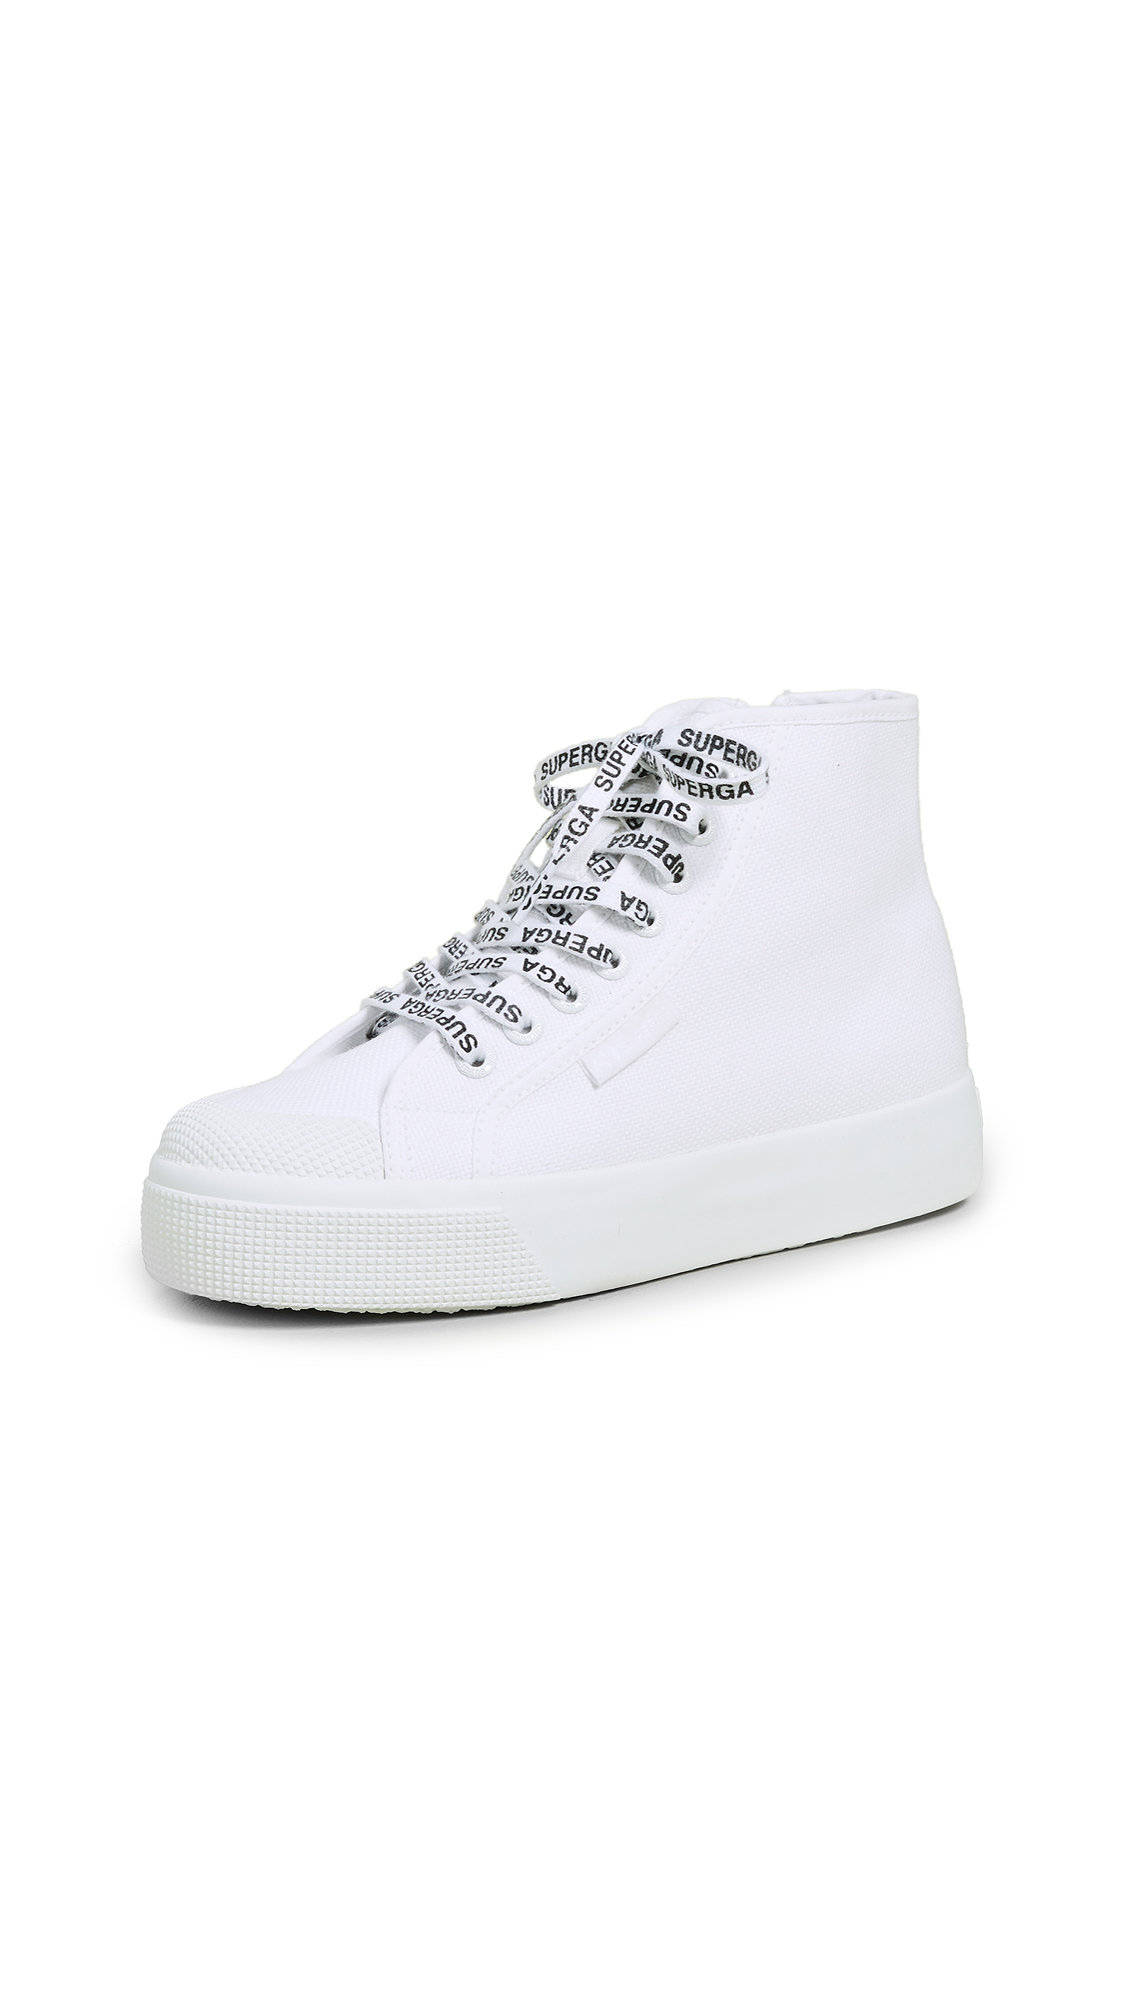 White Out Package High Top Sneakers in White/White